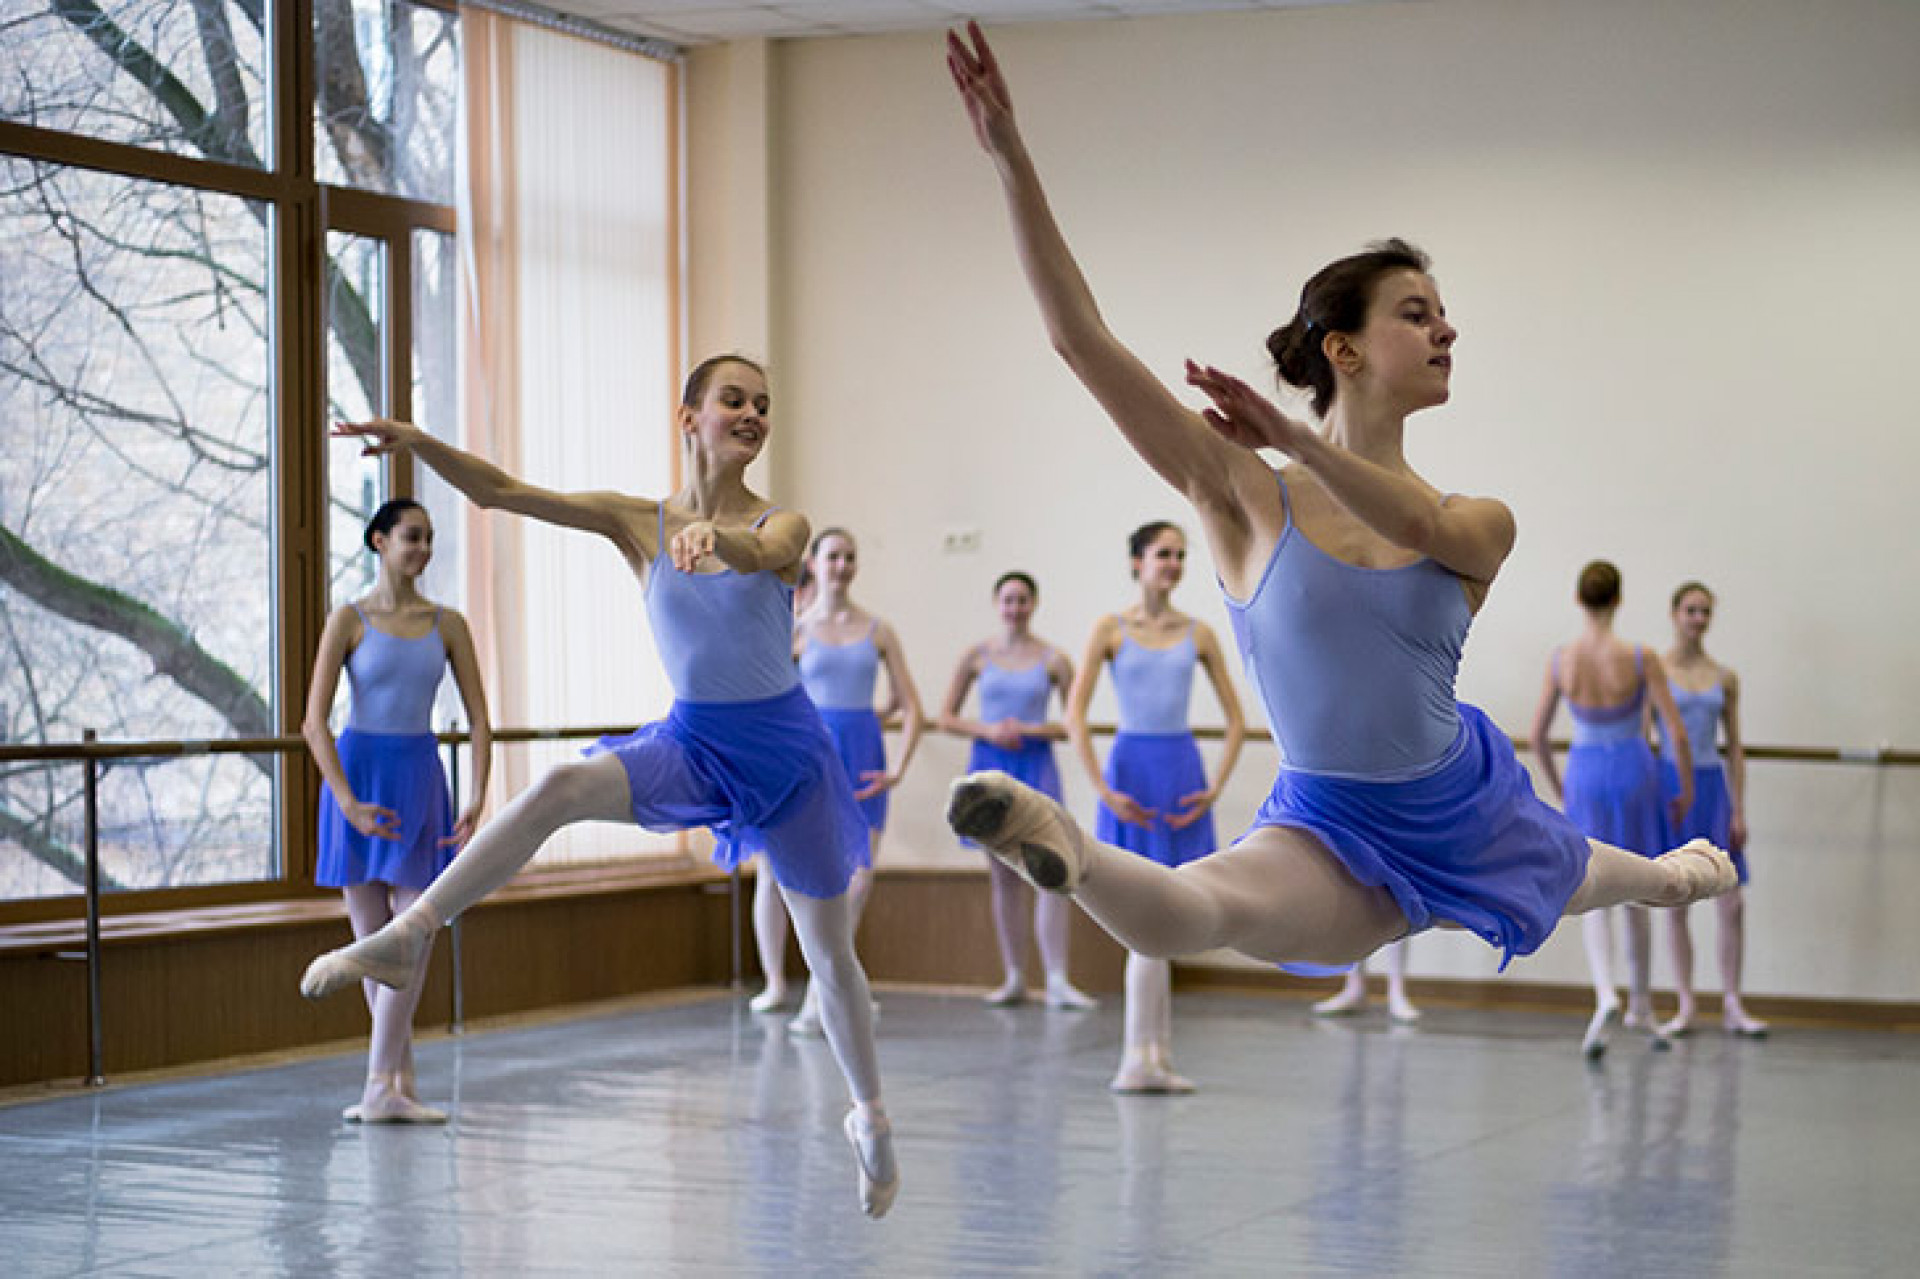 Behind the Scenes of the Bolshoi Ballet Academy